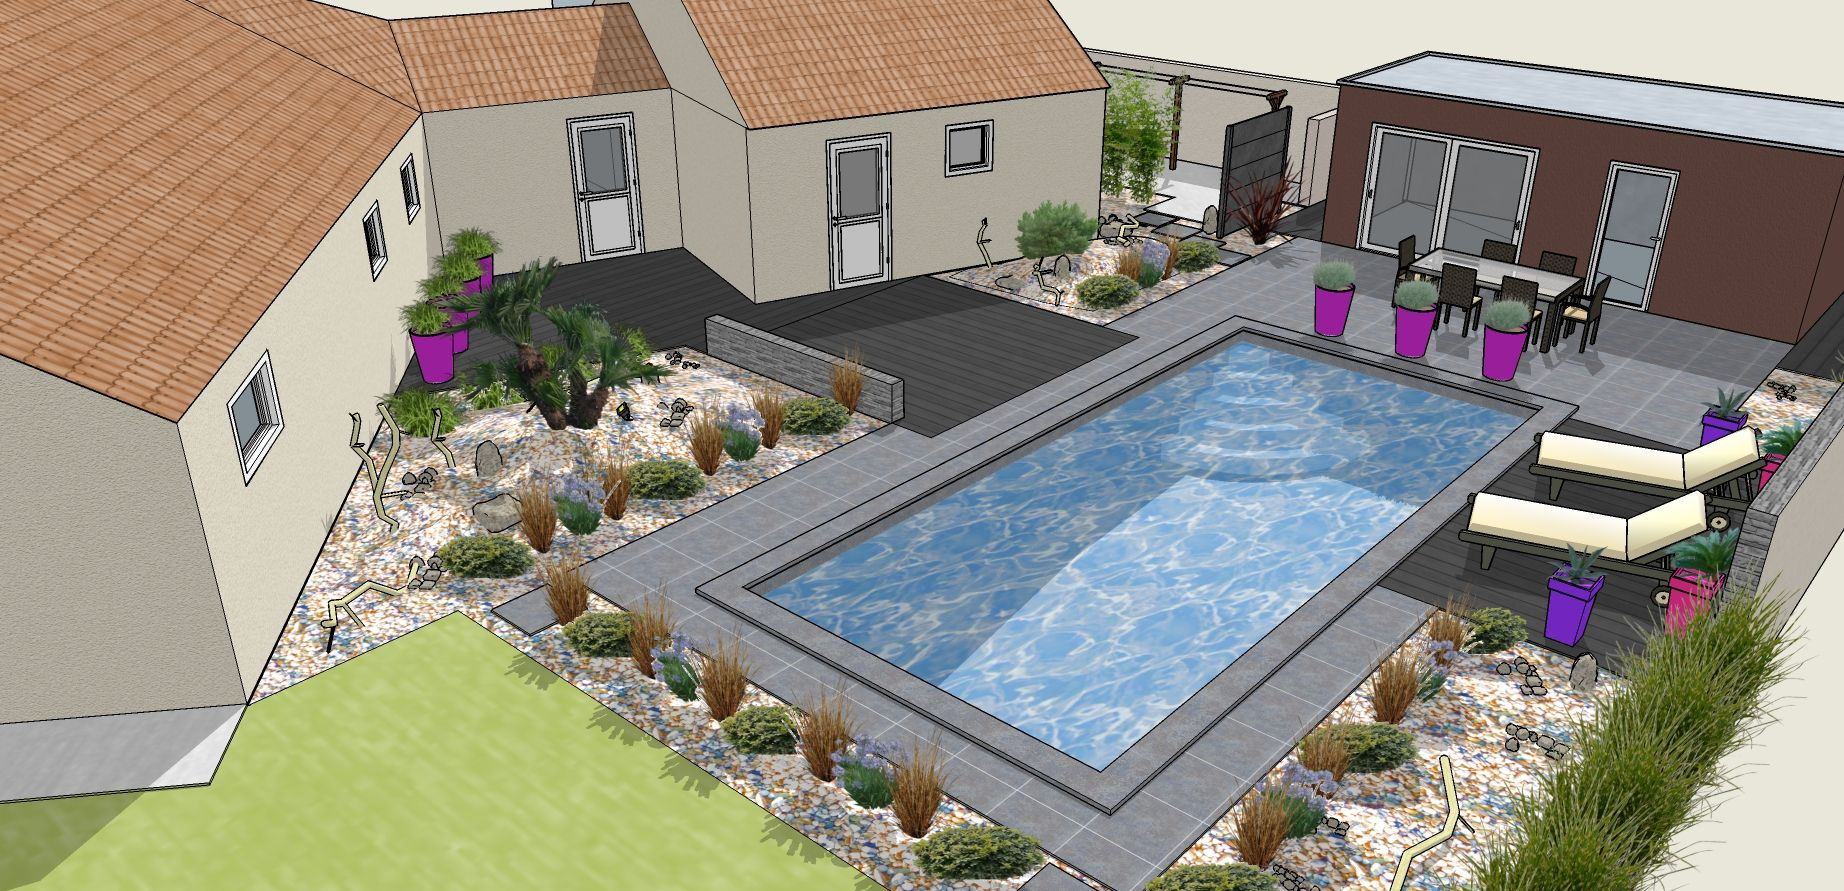 Am nagement paysager piscine creus e contemporain - Amenagement terrasse piscine ...